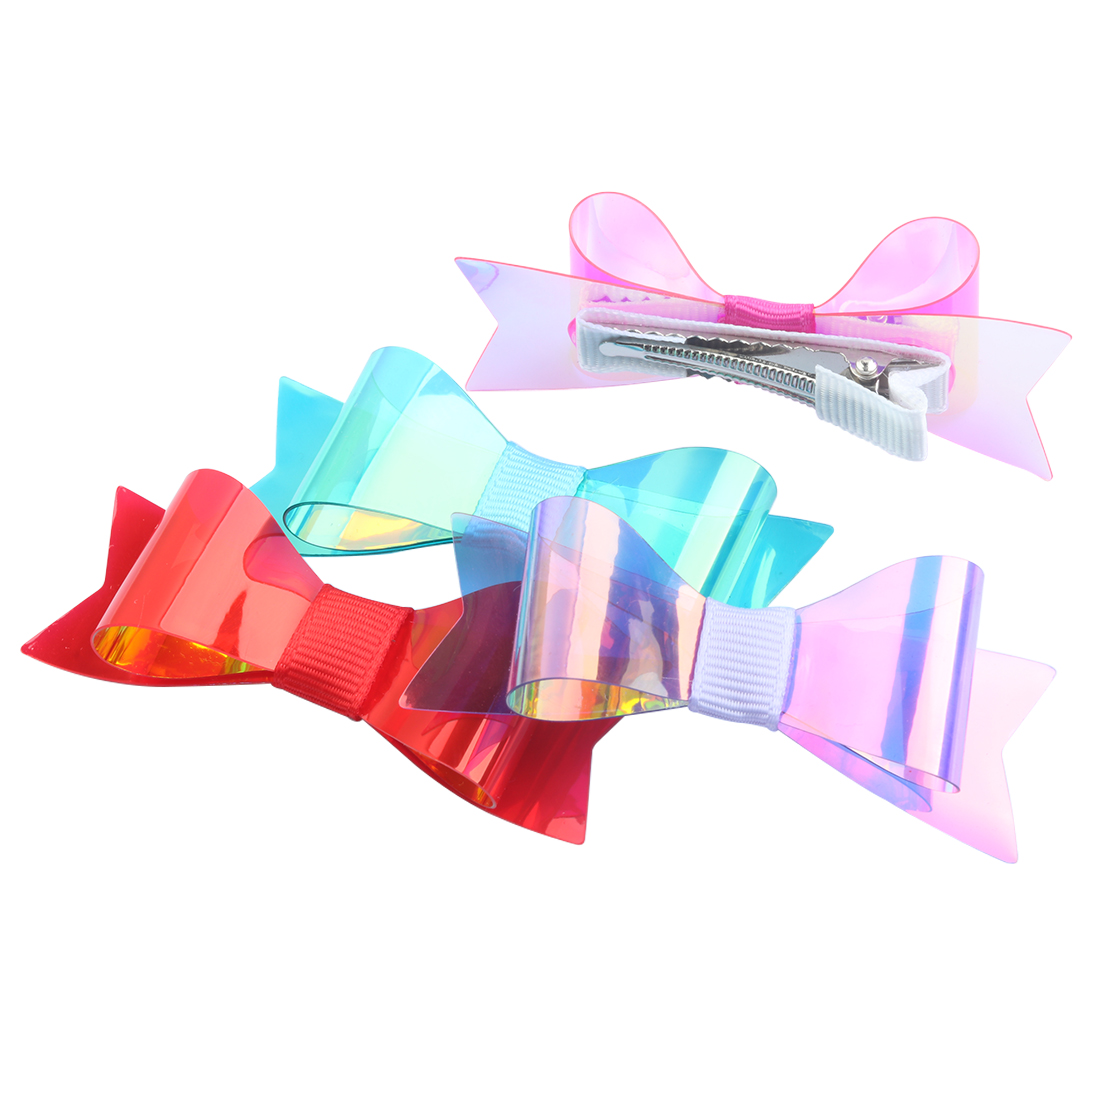 1 Pc Hairbows Hairclips Mini Bow With Clips Pvc Glossy Bows Knotted Fashion New Design Girls Headwear Children Hair Accessories An Enriches And Nutrient For The Liver And Kidney